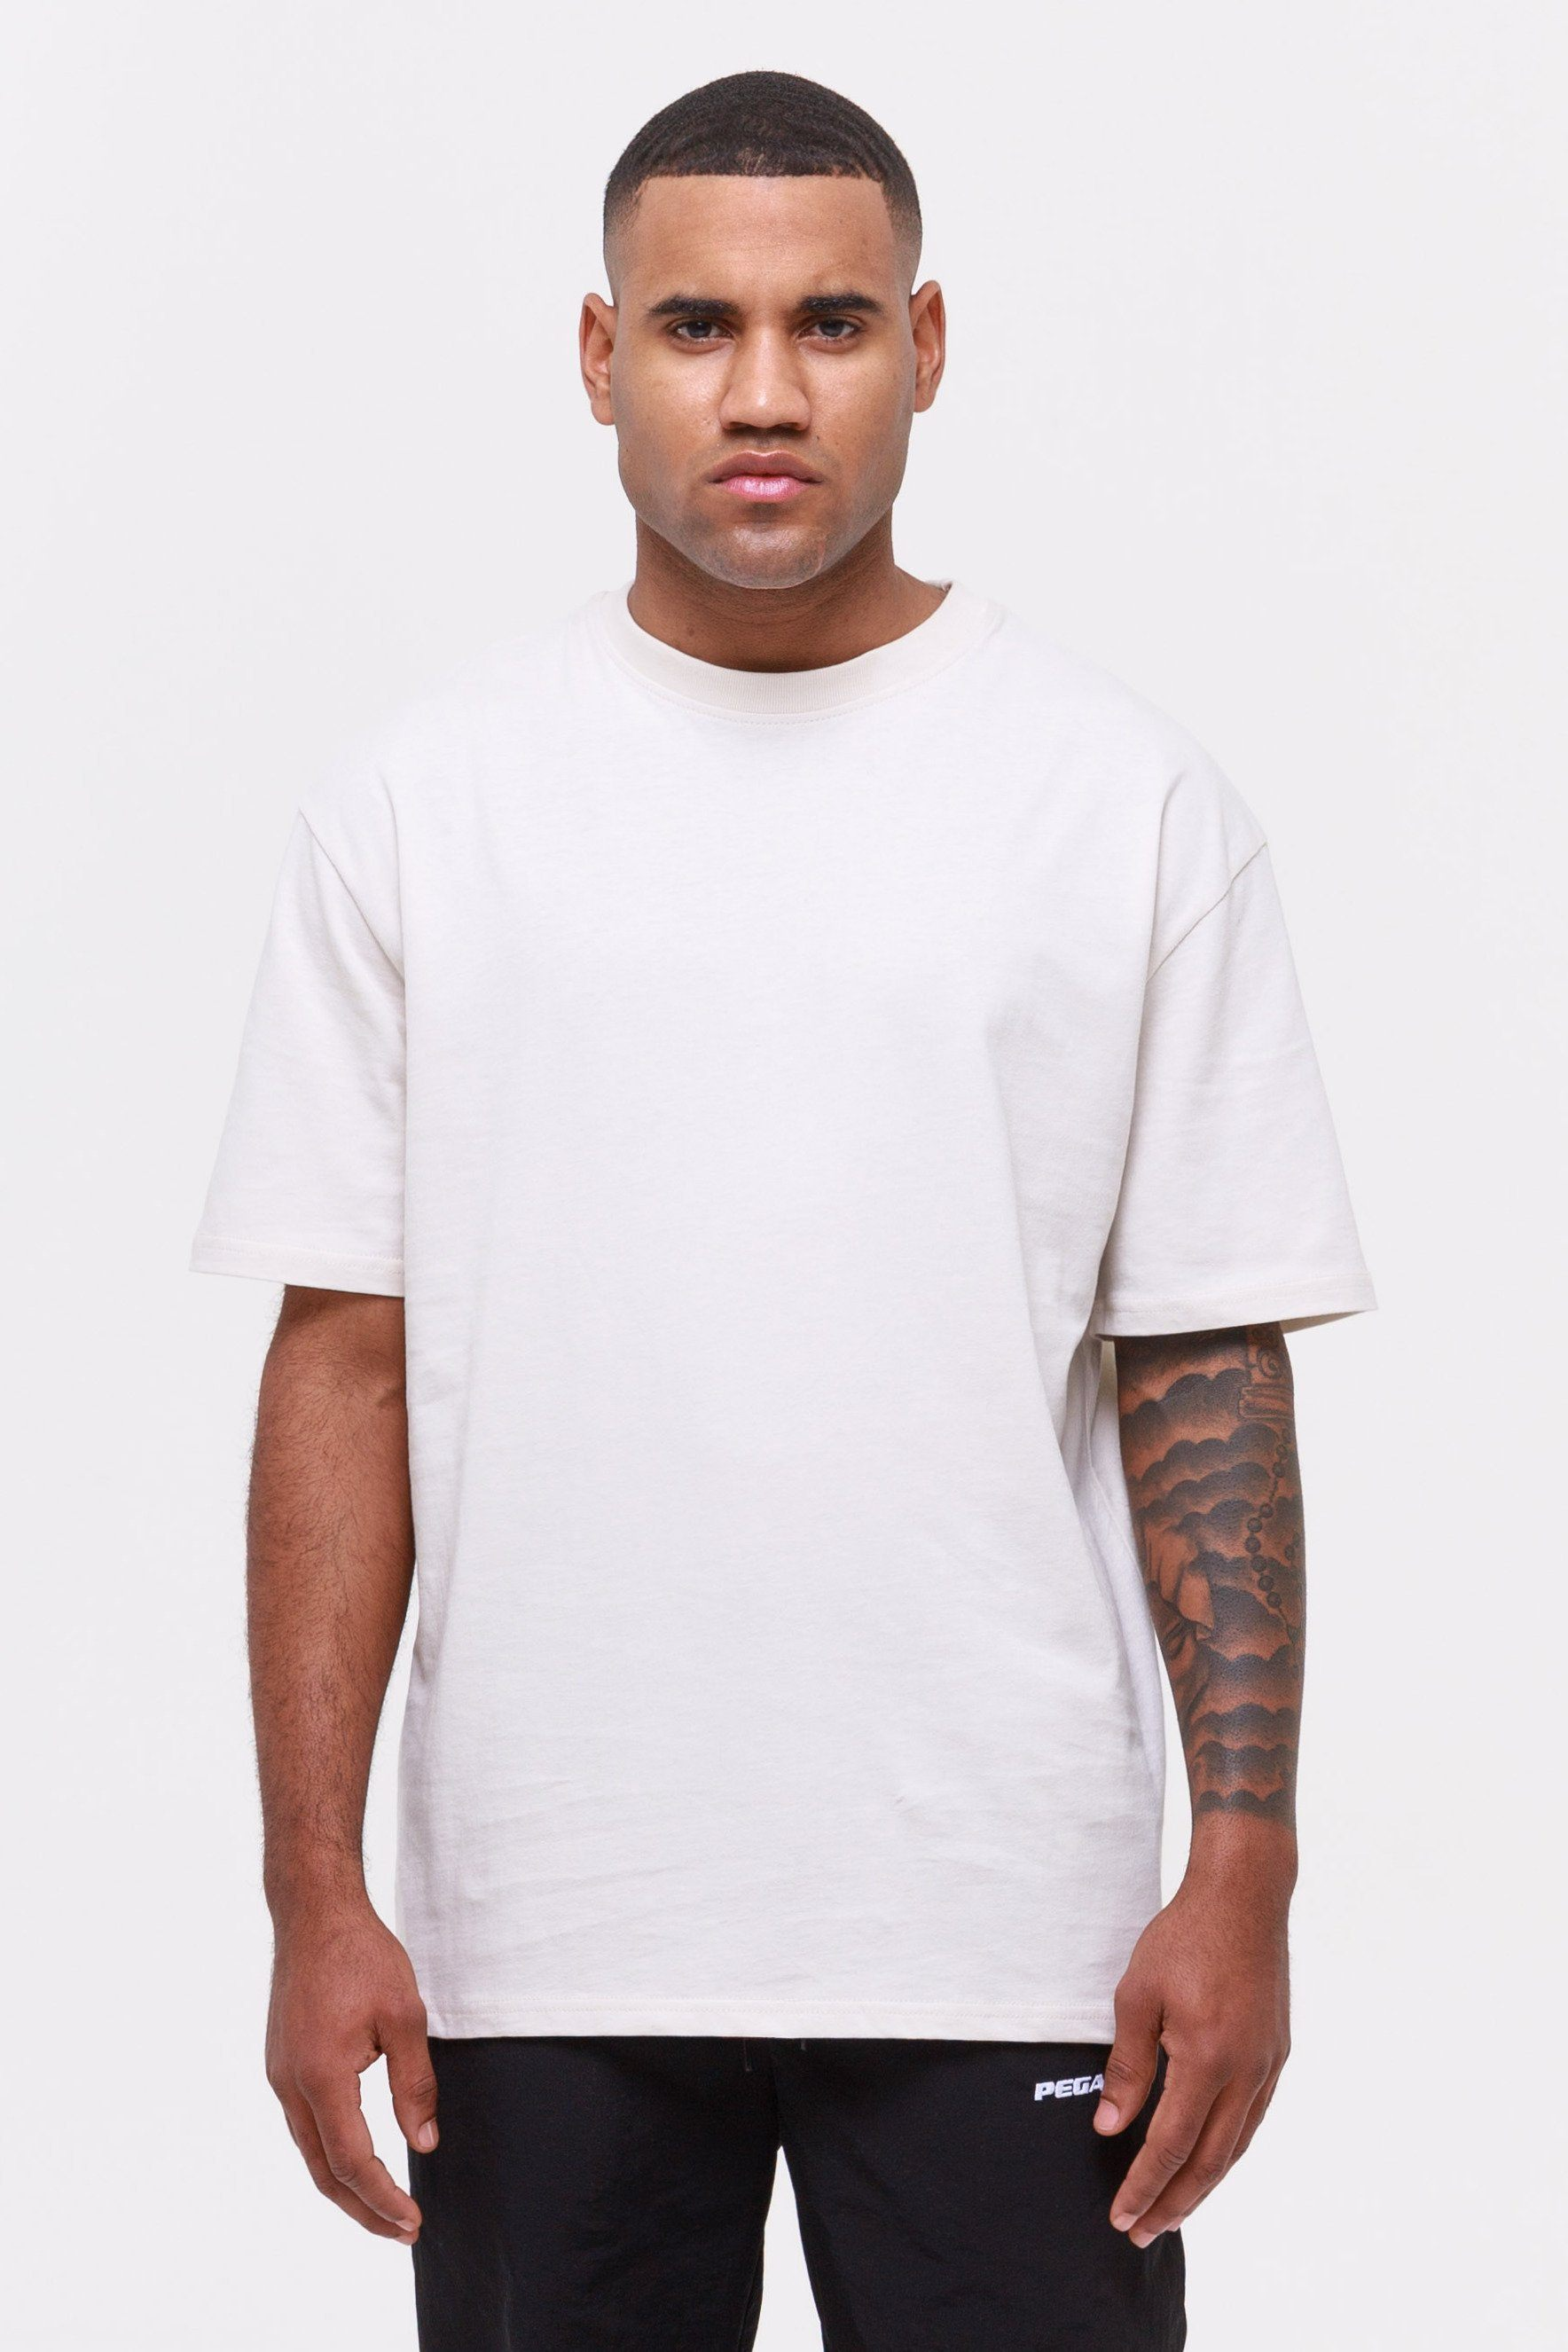 Oversized Tee Coconut Milk T-SHIRT Wild Society